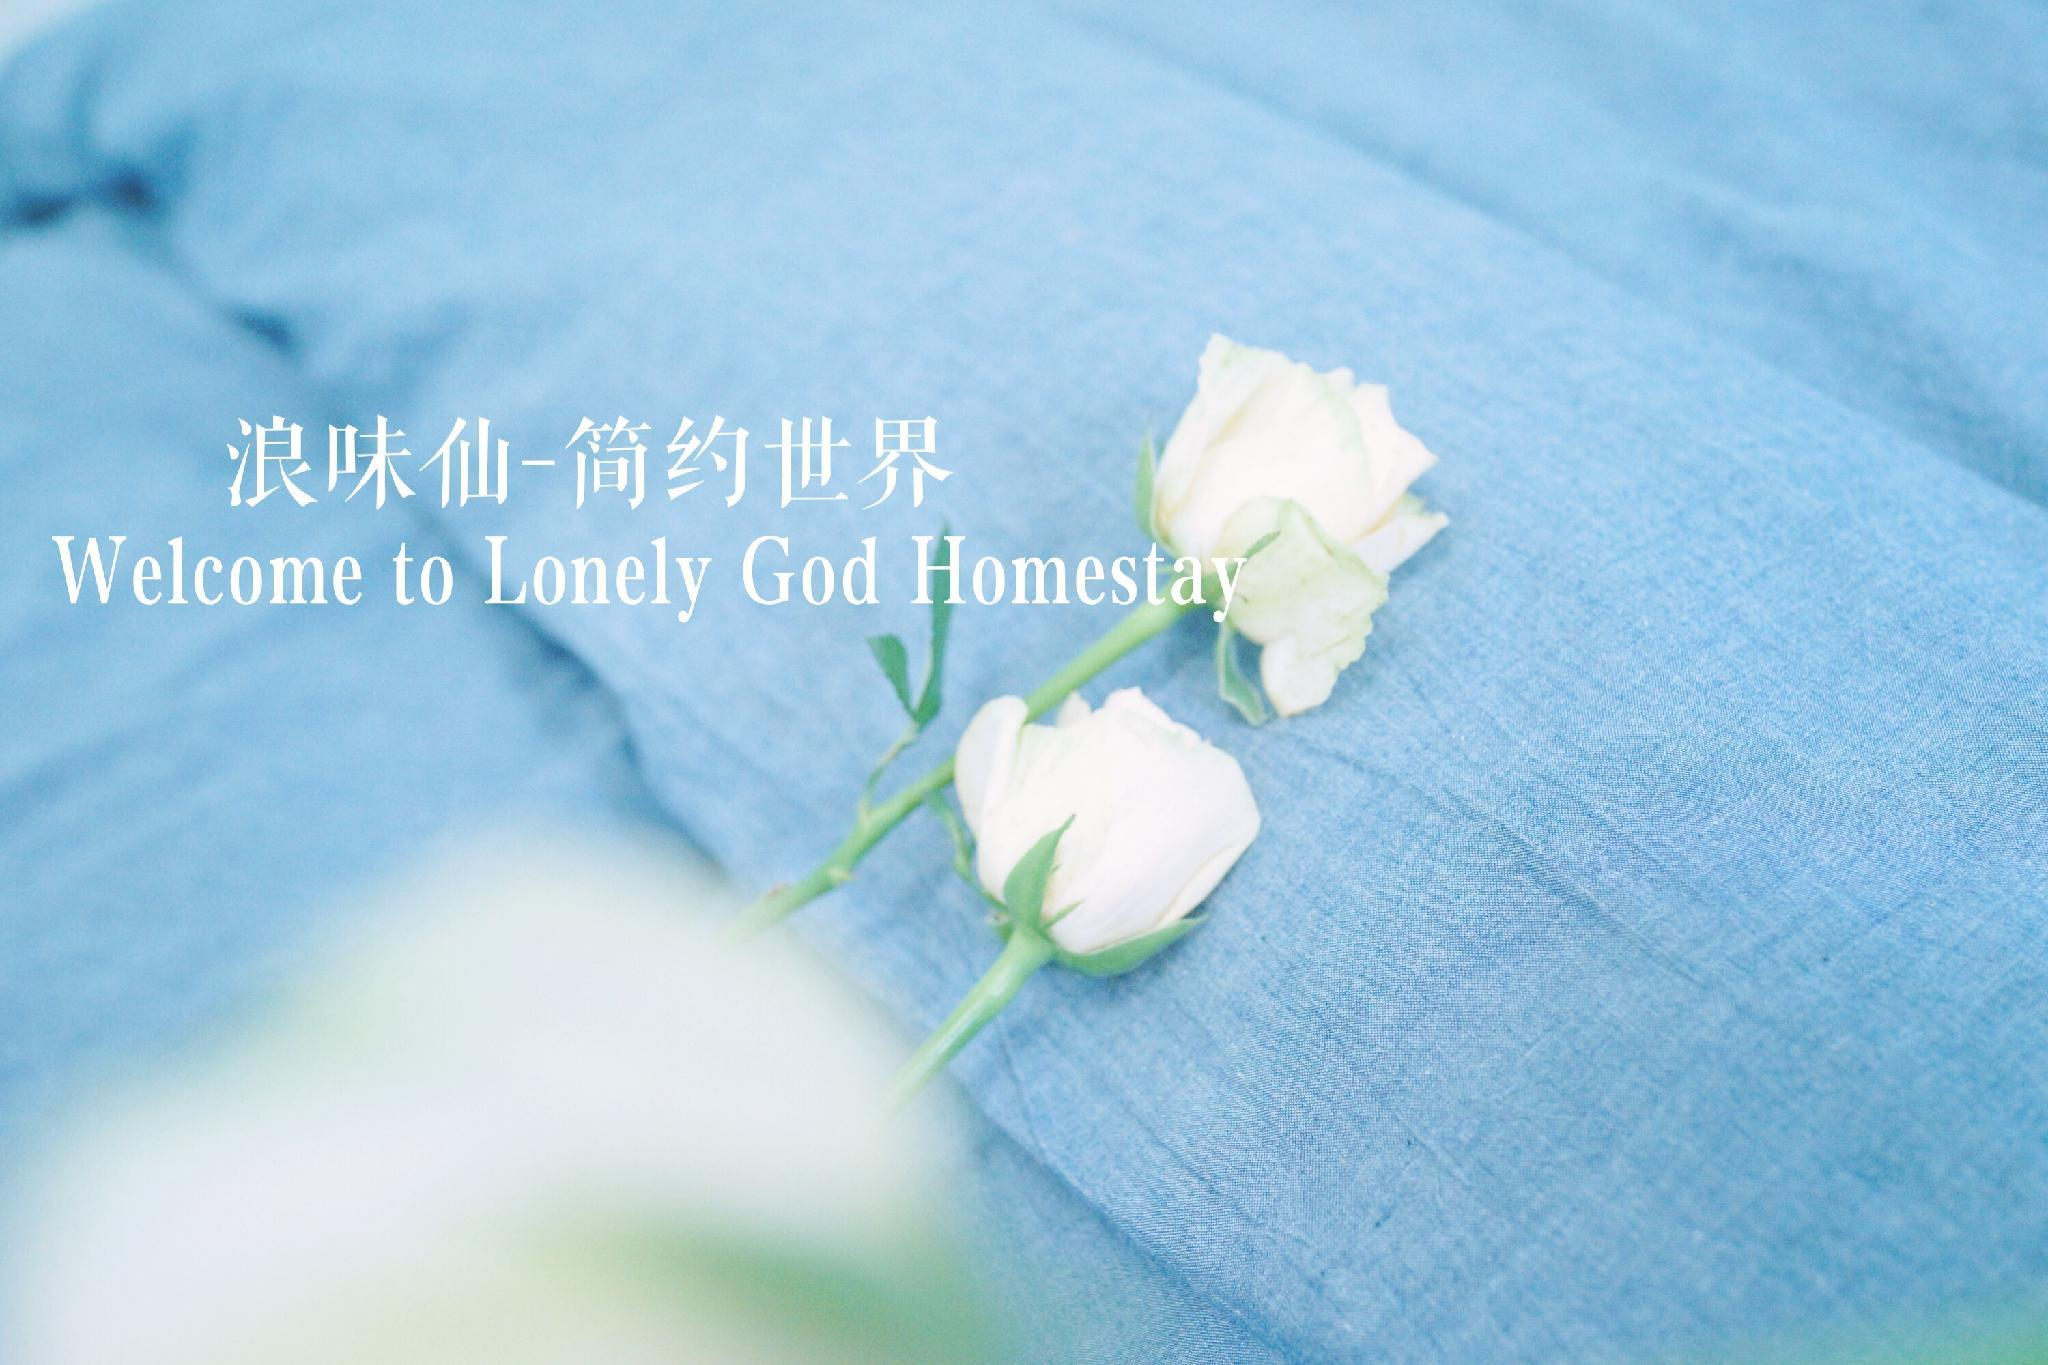 Lonely God Homestay  3 Rooms Entire Rent